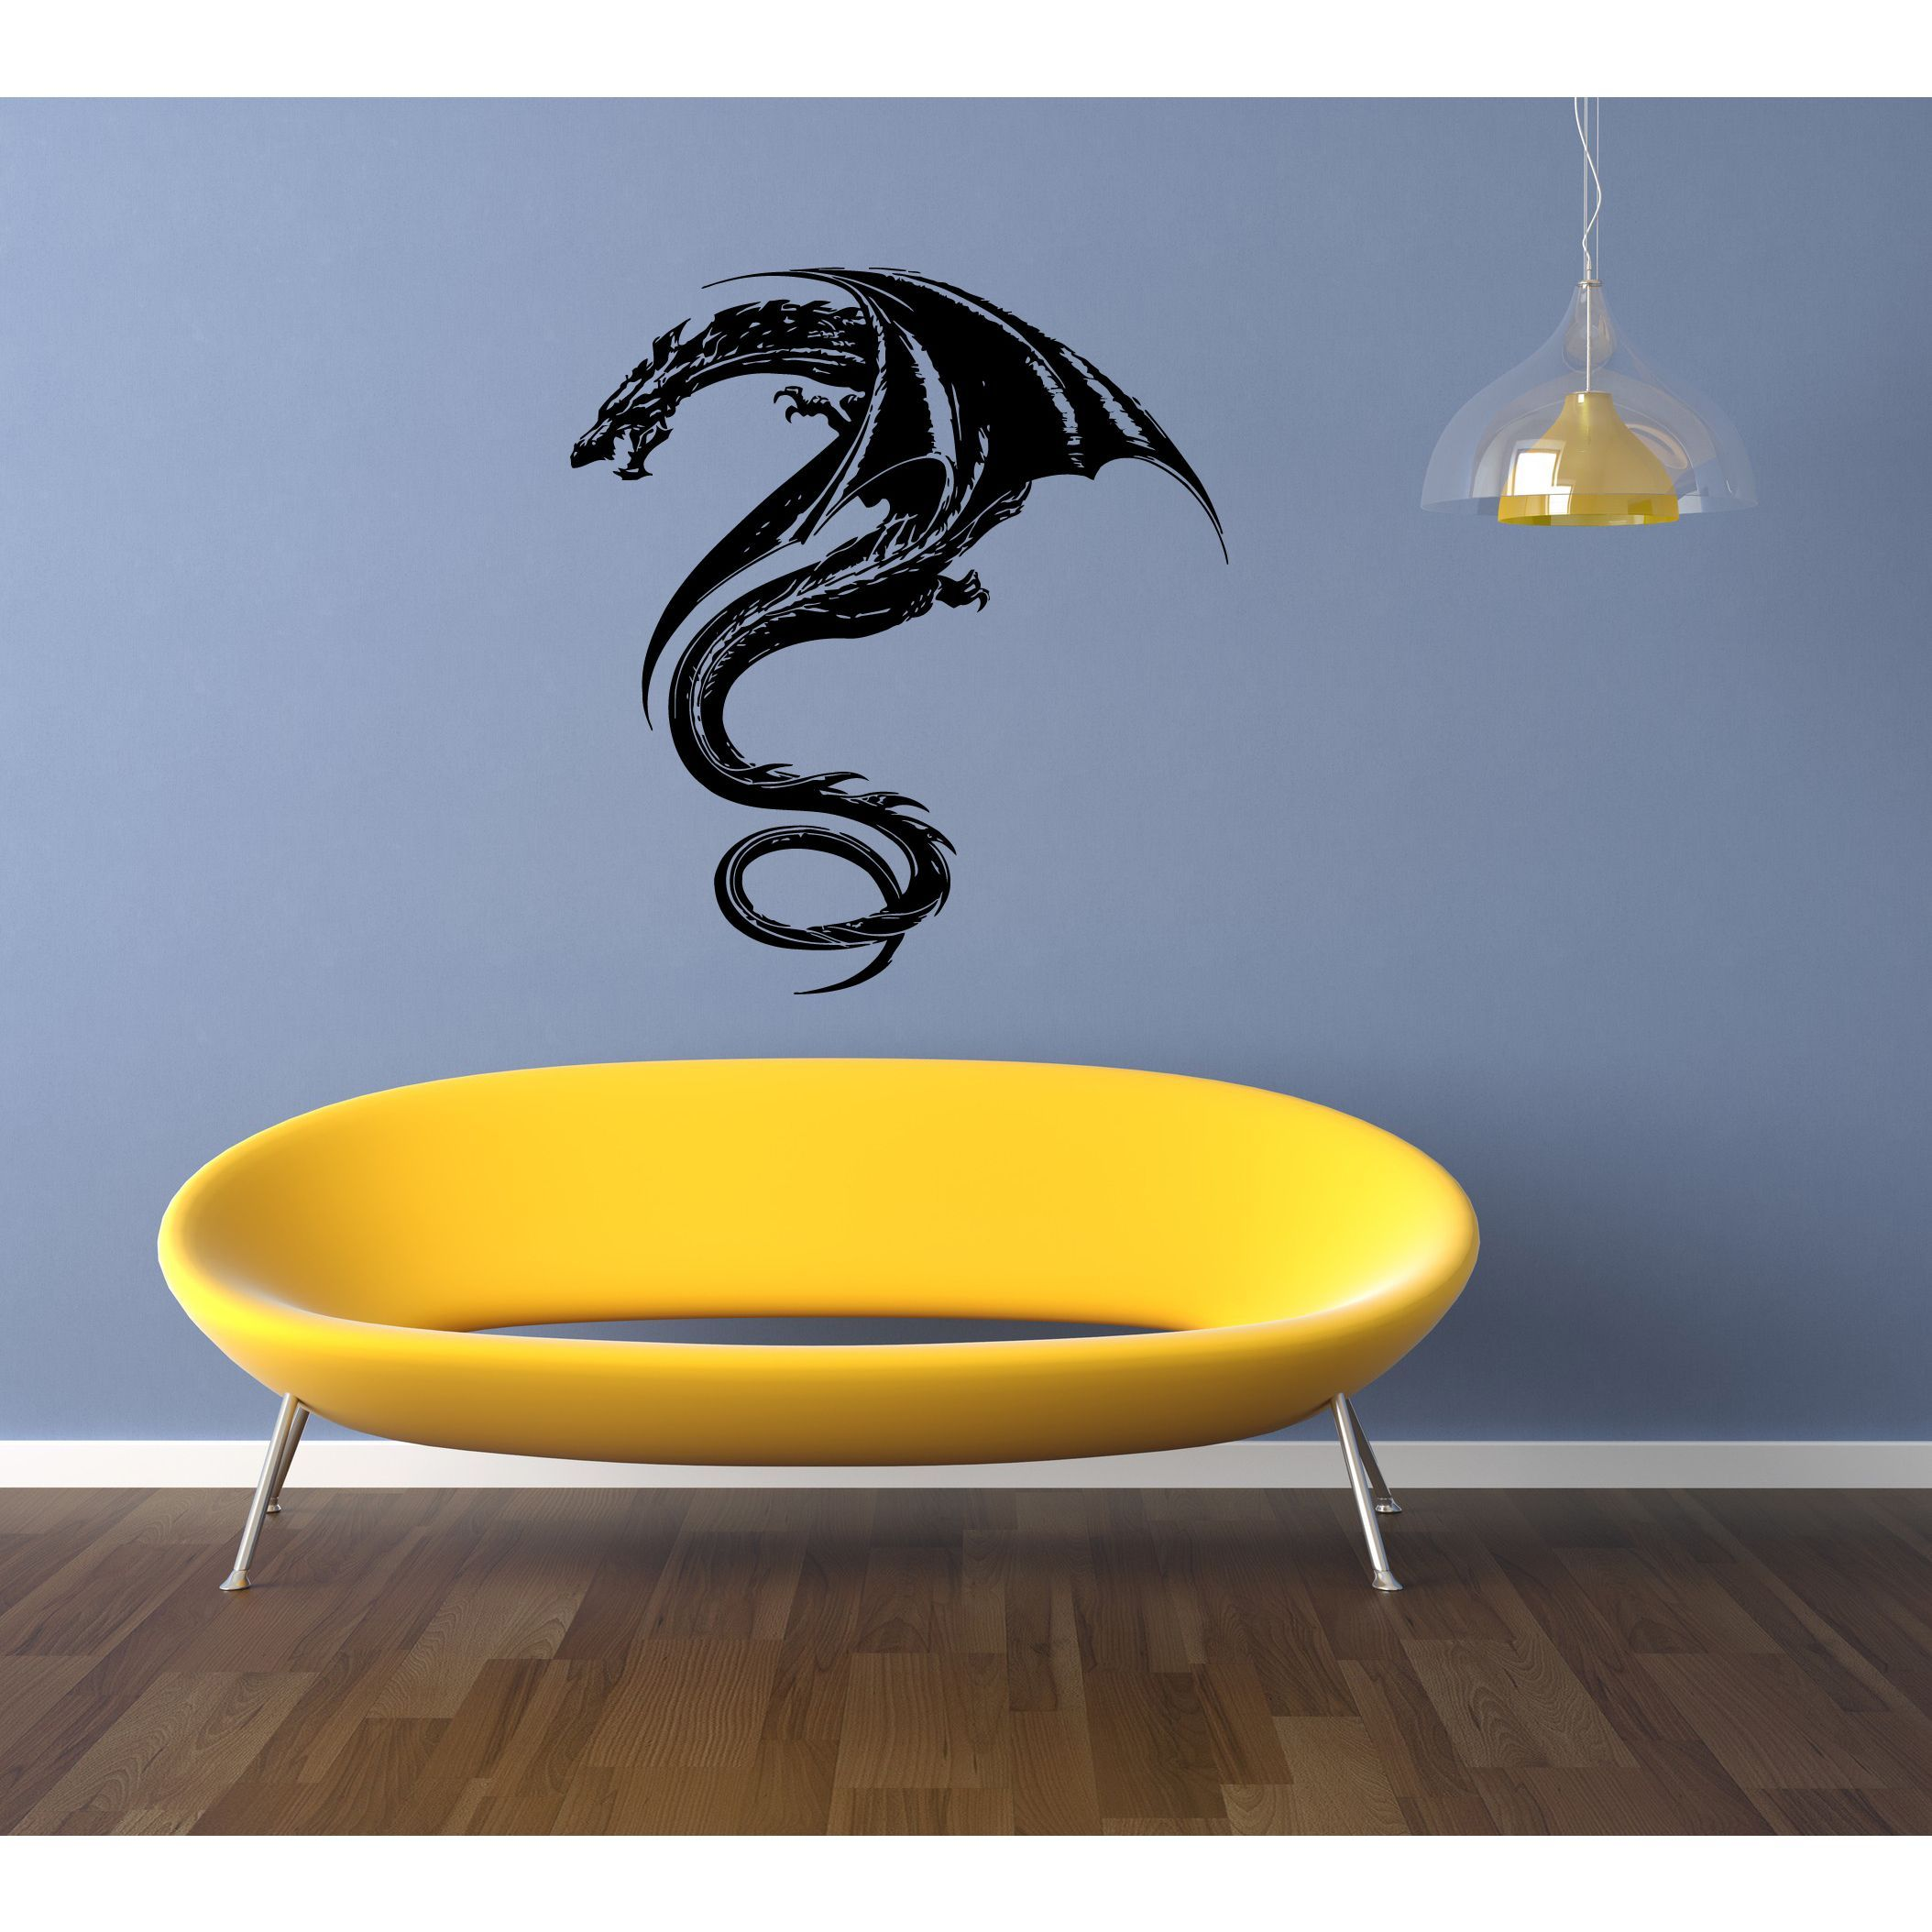 dragon Wall Art Sticker Decal | For Aiden | Pinterest | Black dragon ...